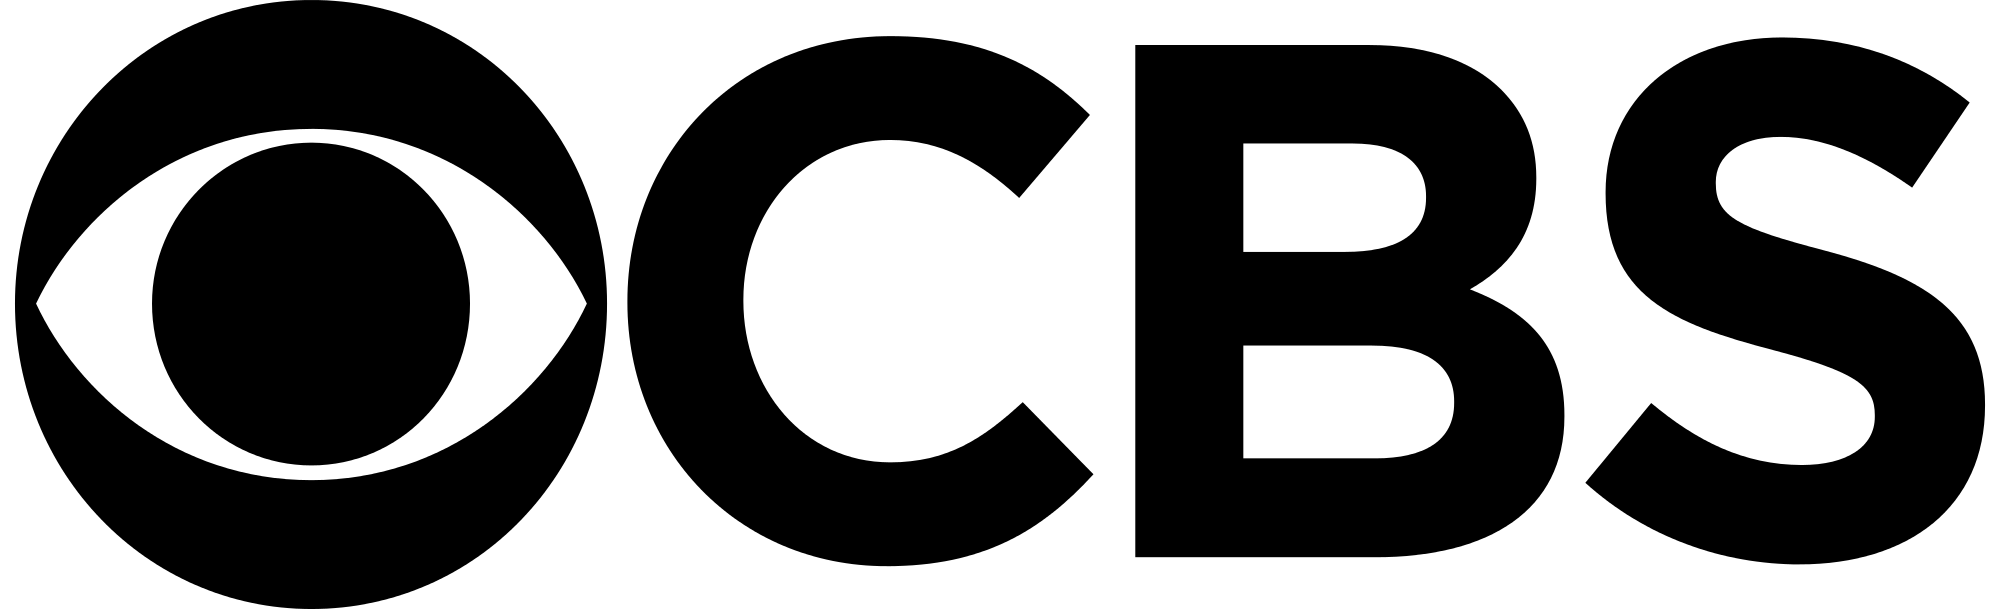 Cbs Logo Transparent Png Stickpng